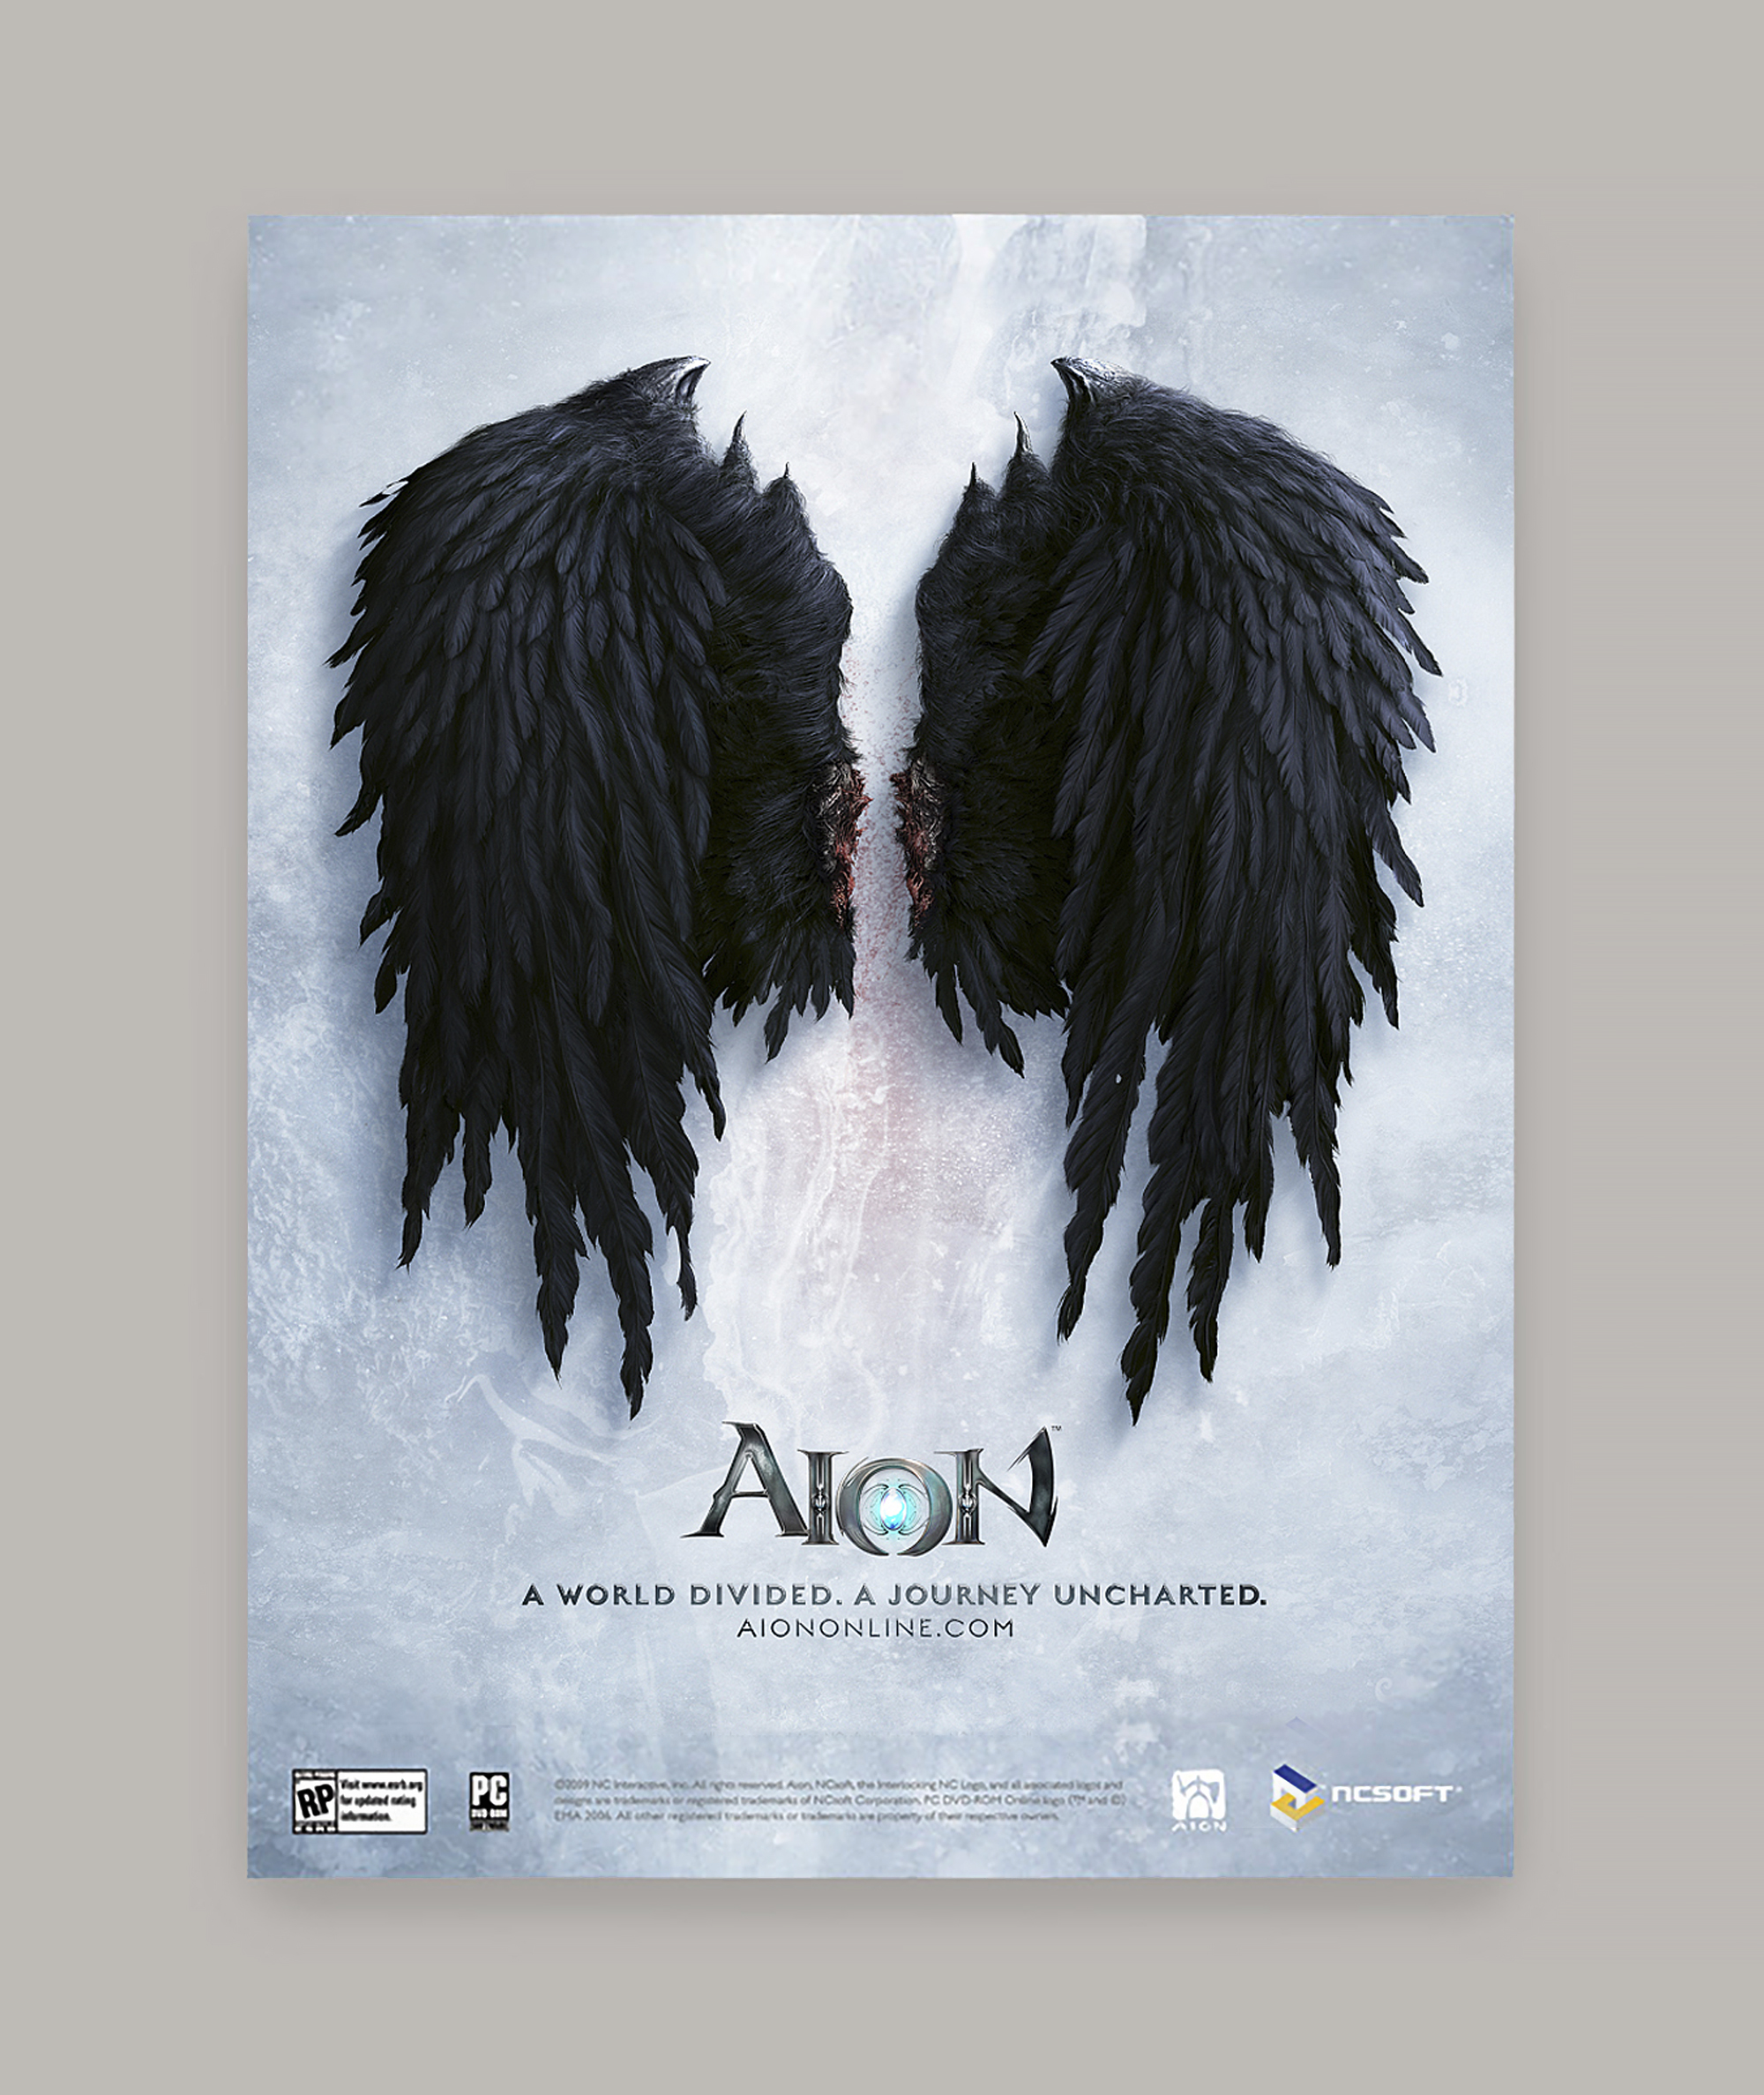 Aion_BlackWings_2000px.jpg